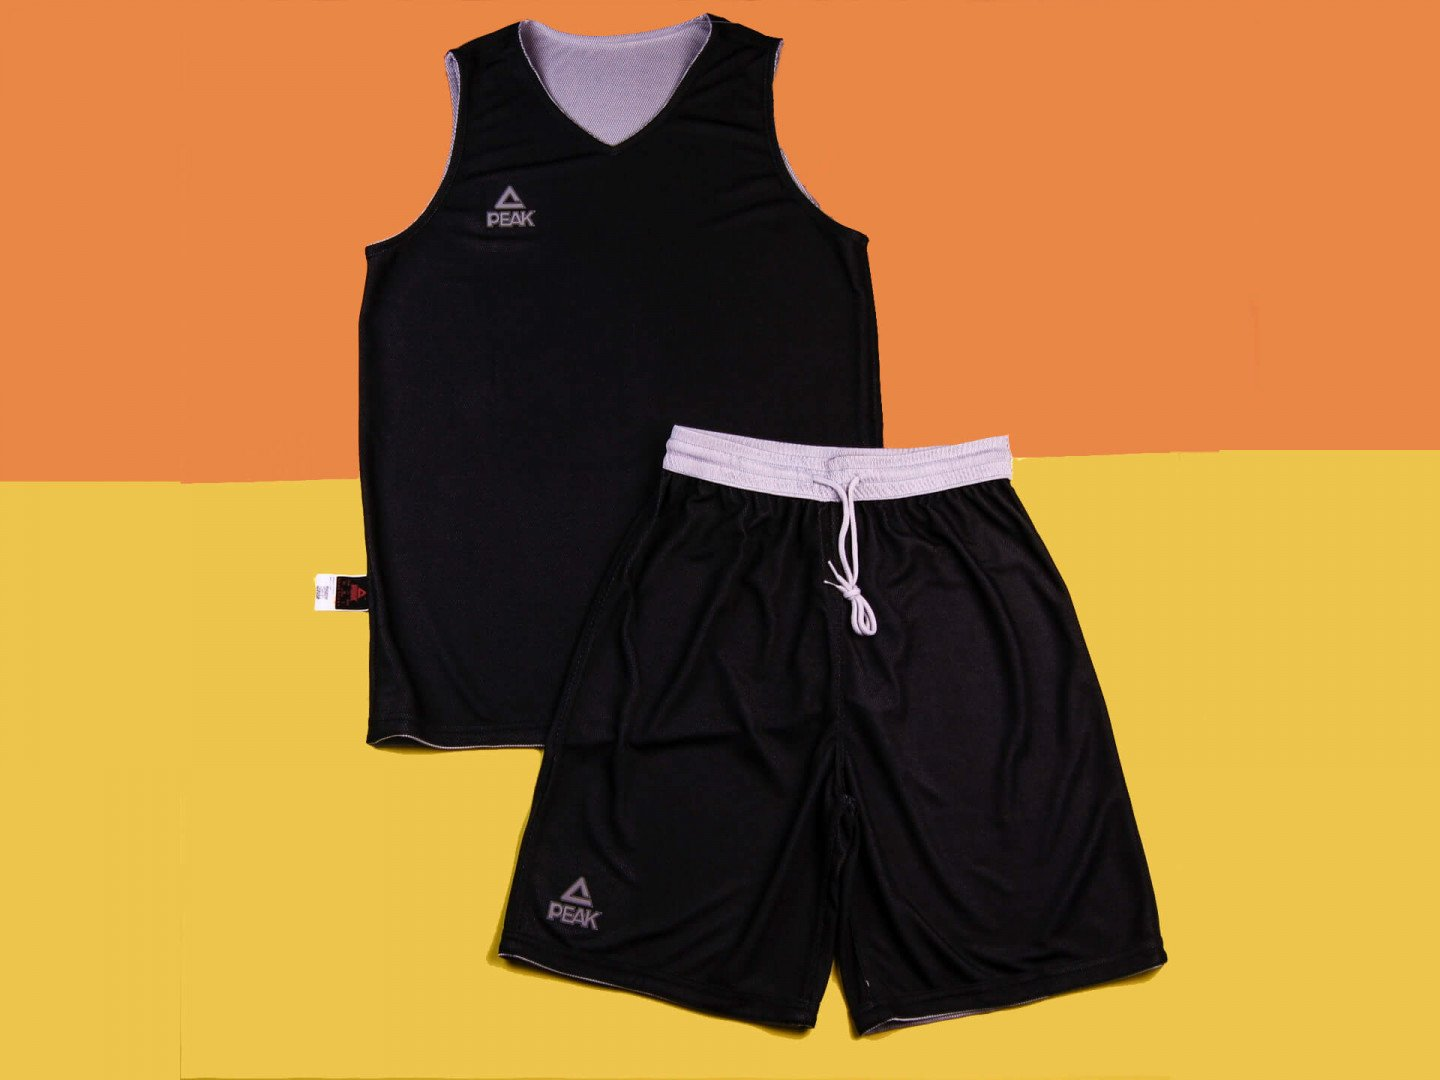 Двухсторонняя форма PEAK Basketball reversible, white/black